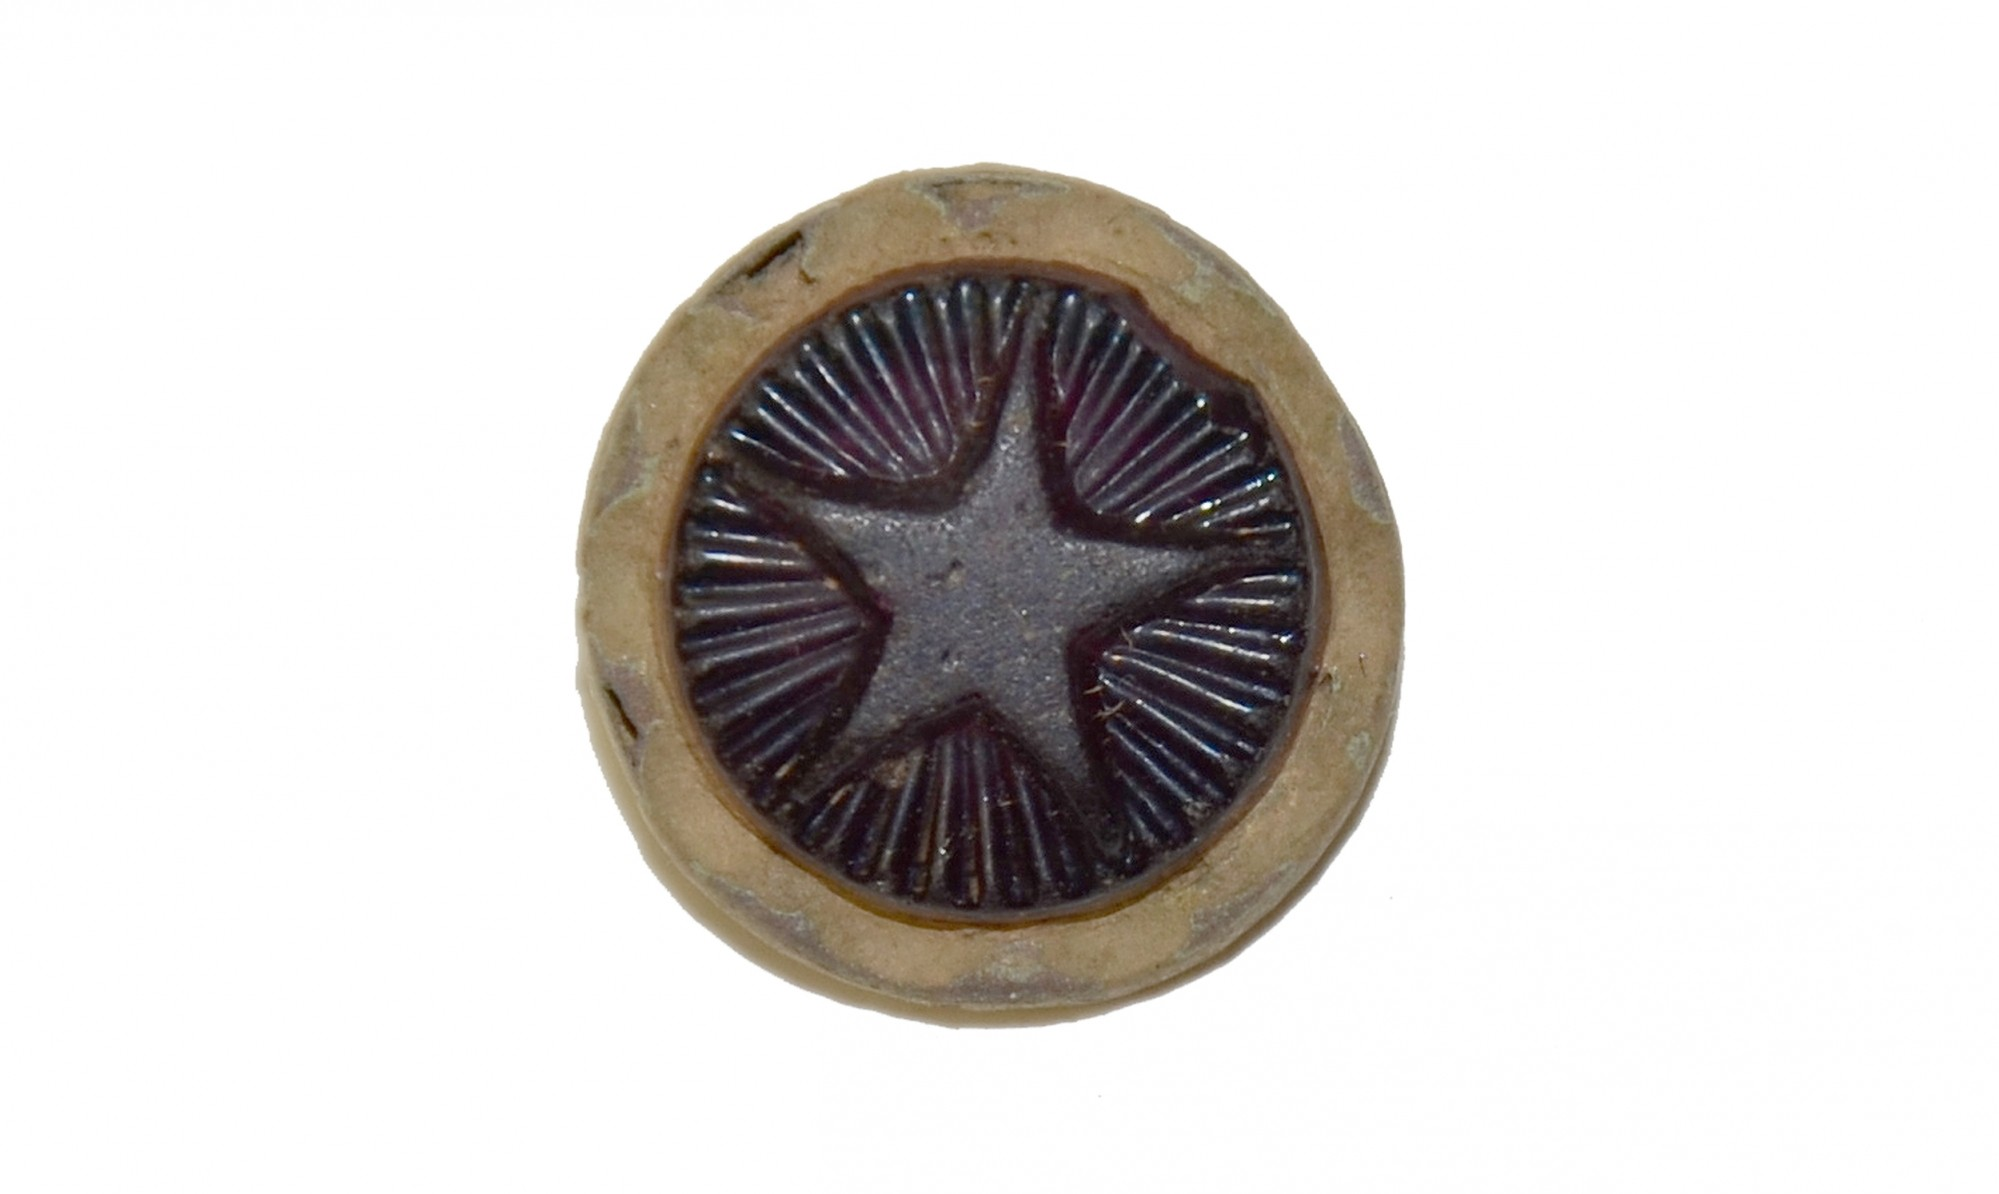 GUTTA PERCHA BUTTON RECOVERED NEAR CULP'S HILL